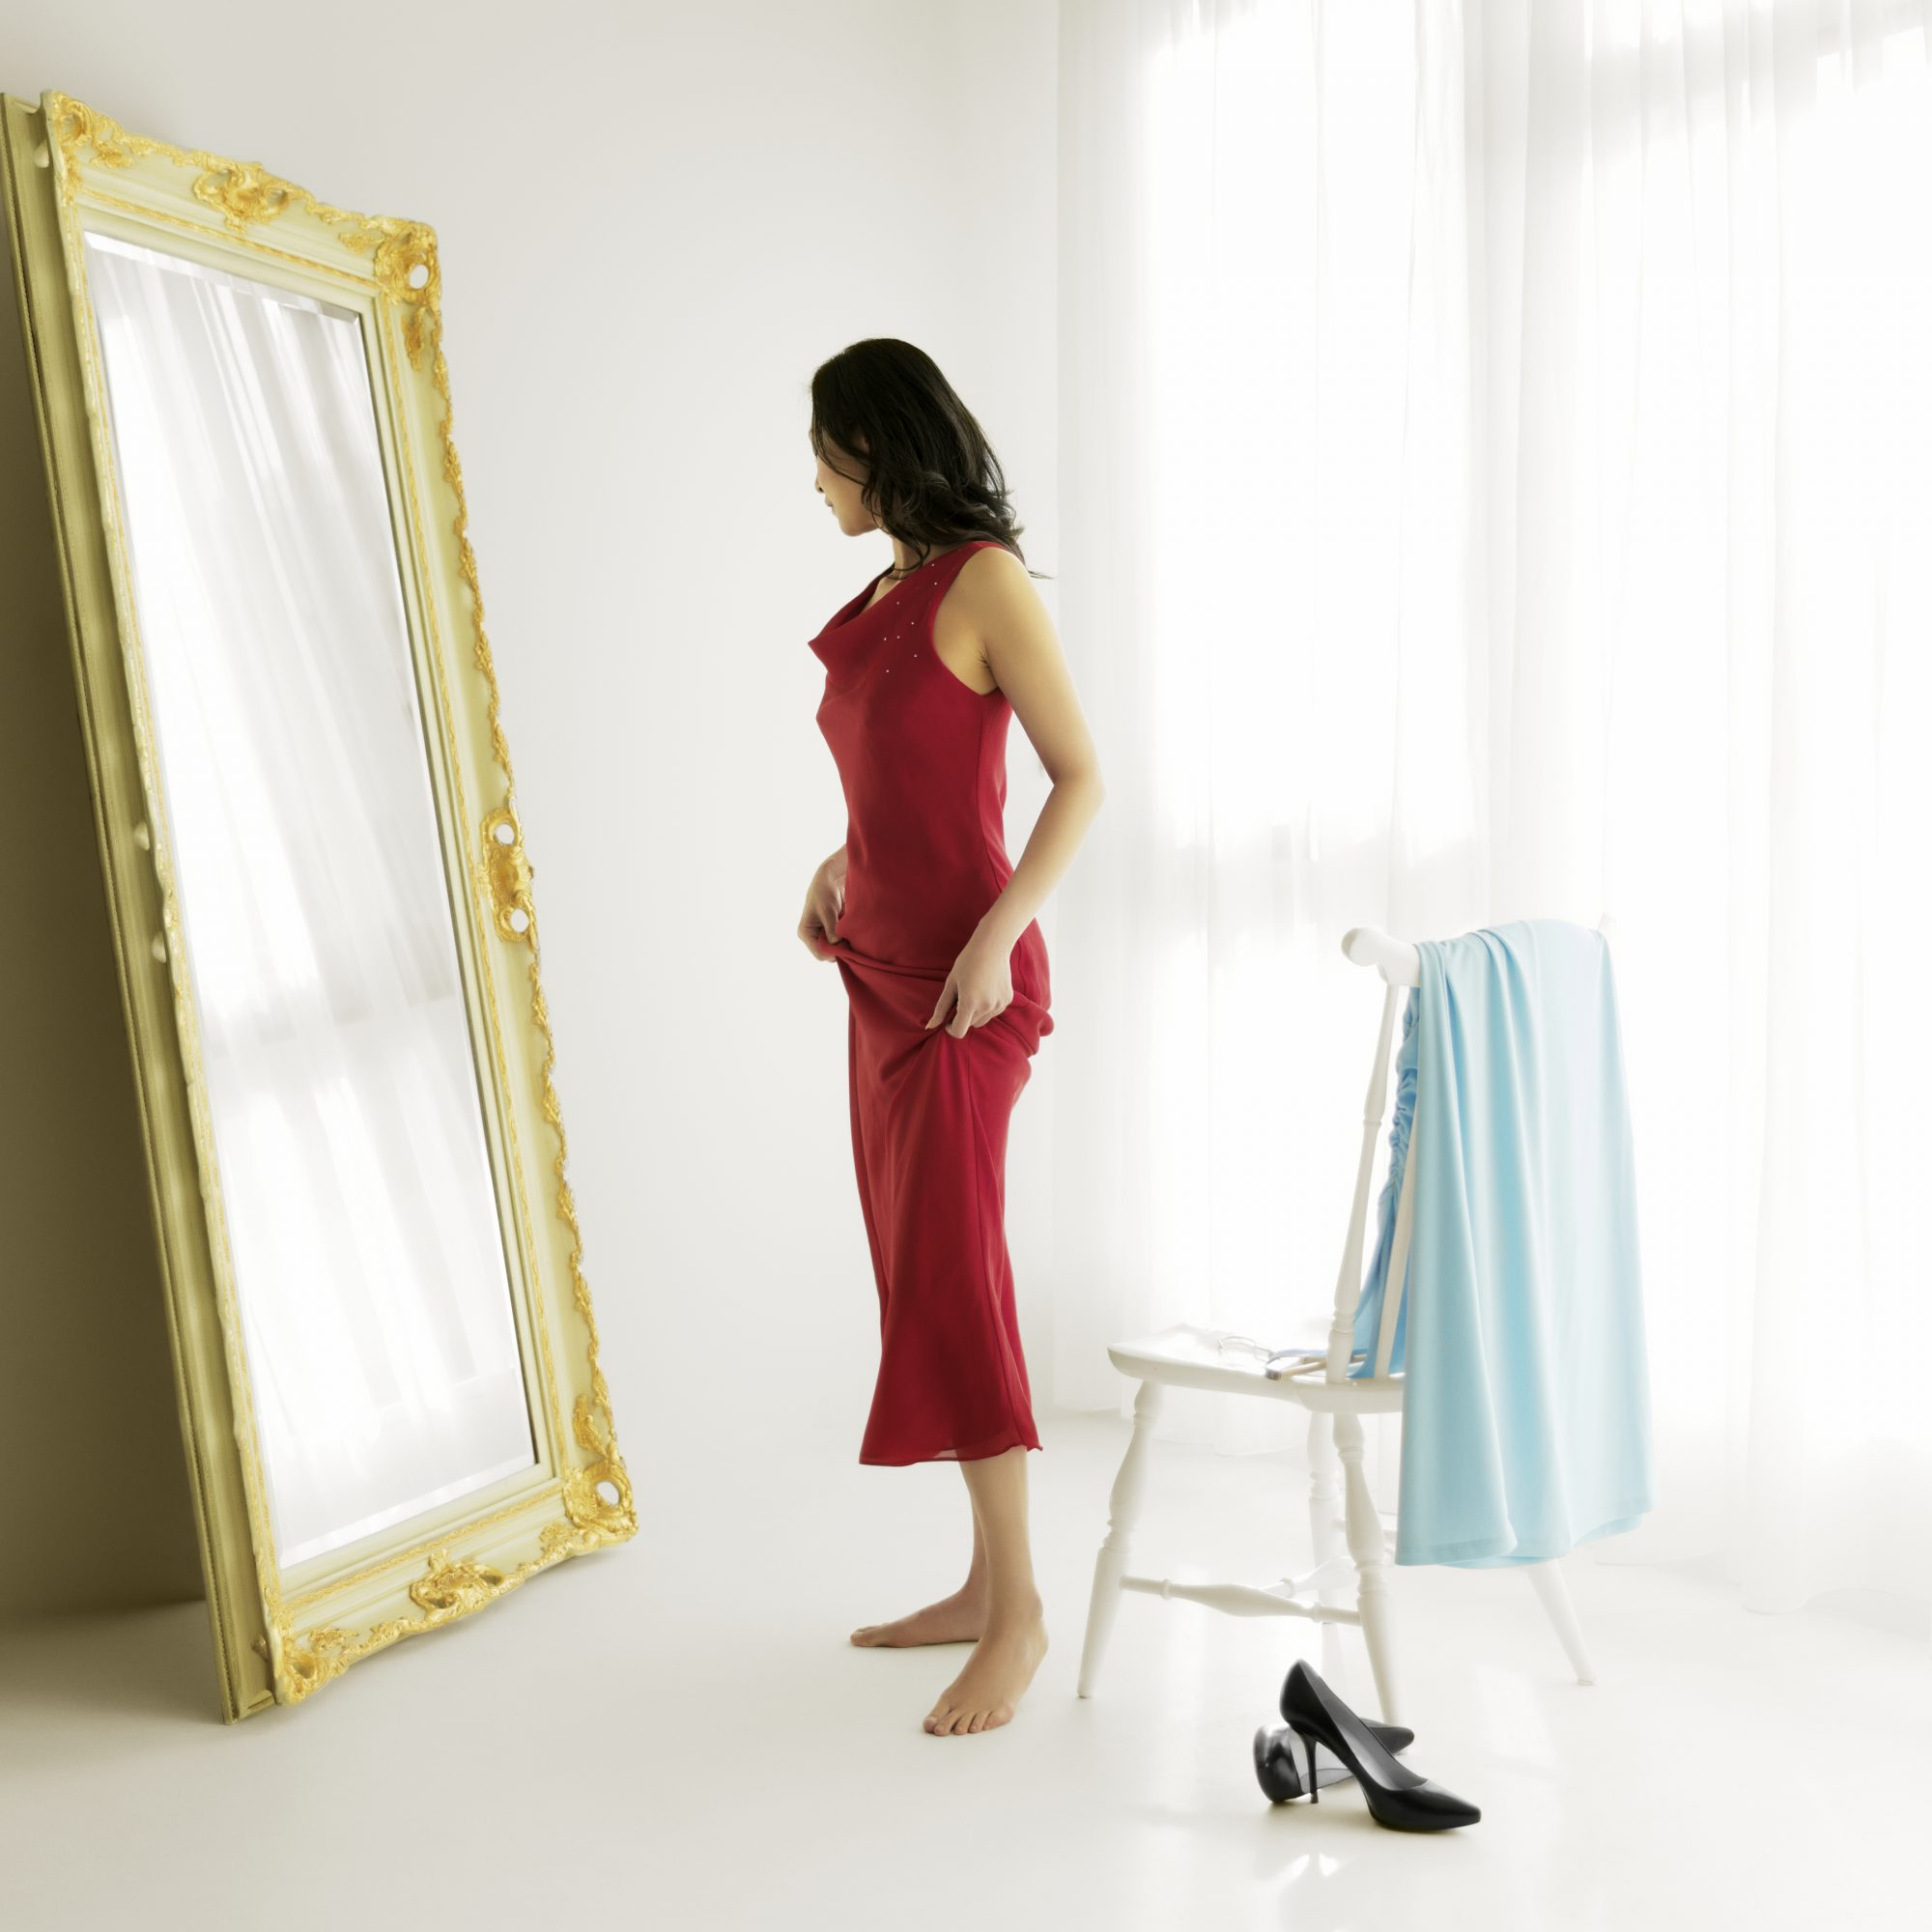 Side view of woman looking at her reflection through a full-length mirror while trying on different evening gowns or formal wear of designer clothing. She is barefoot with high heels on floor beside wood chair and fashion dress hanging over.